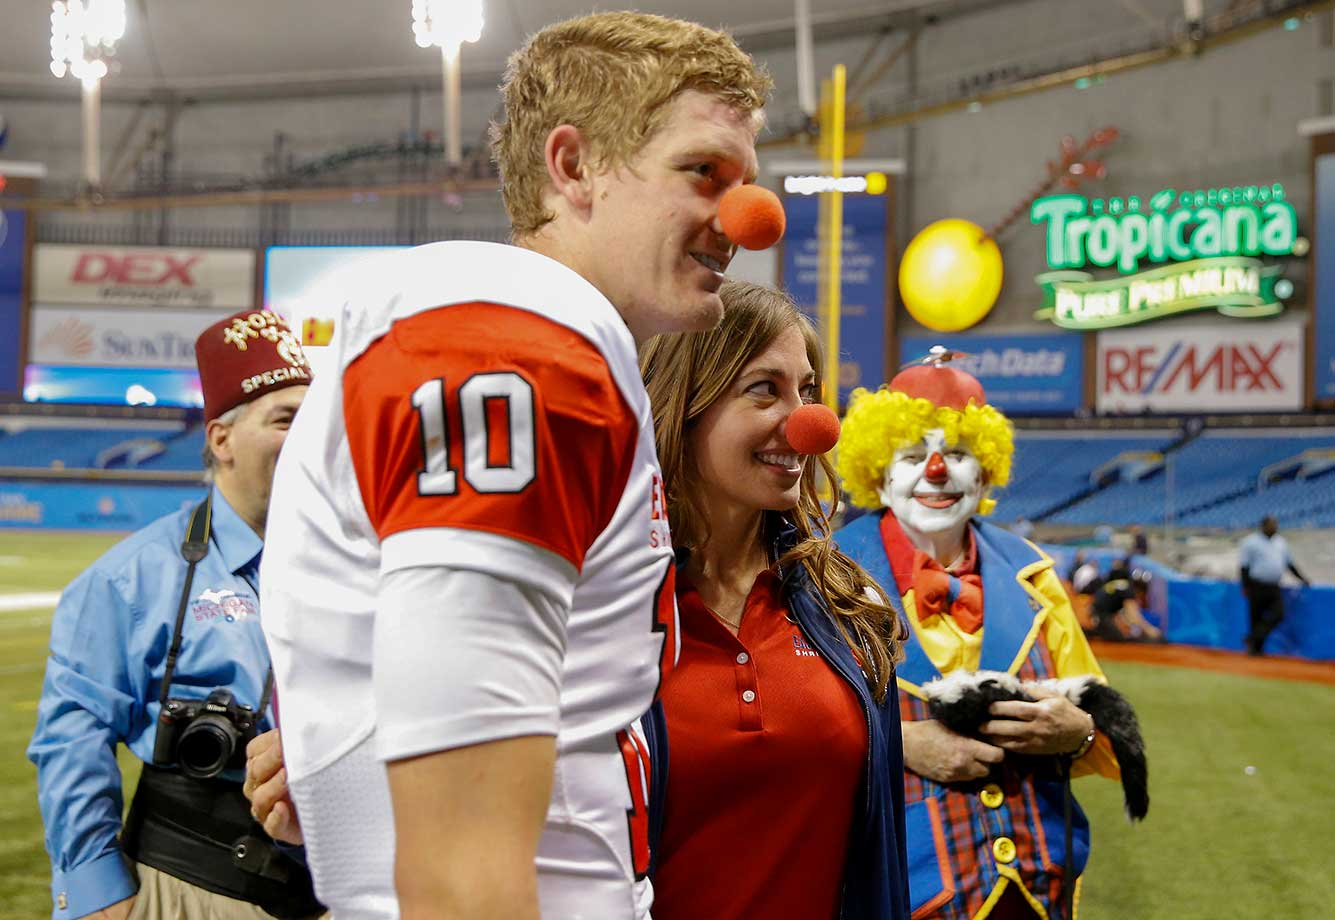 Jake Rudock from Michigan playing on the East Team poses with Shriners following the East West Shrine Game at Tropicana Field in St. Petersburg, Fla.